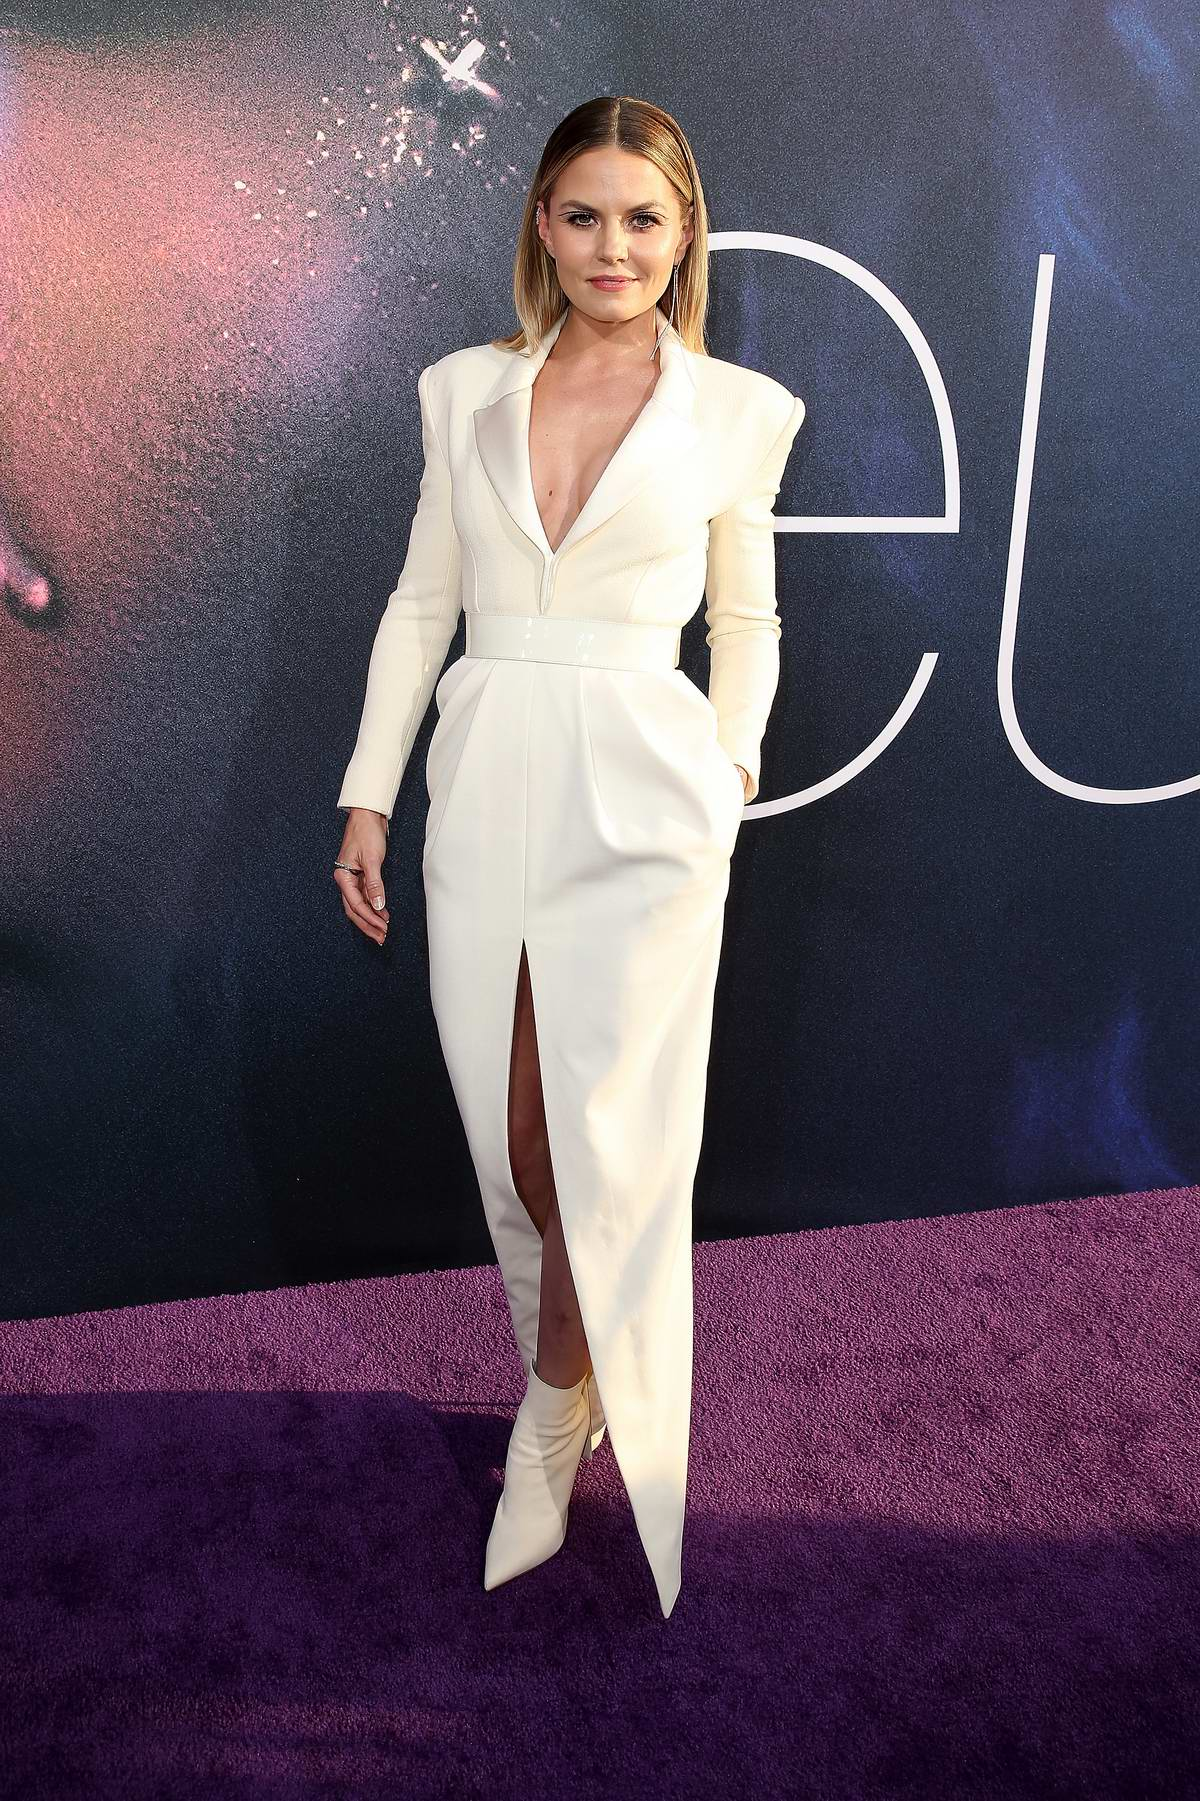 Jennifer Morrison attends the premiere Of HBO's 'Euphoria' at The Cinerama Dome in Los Angeles